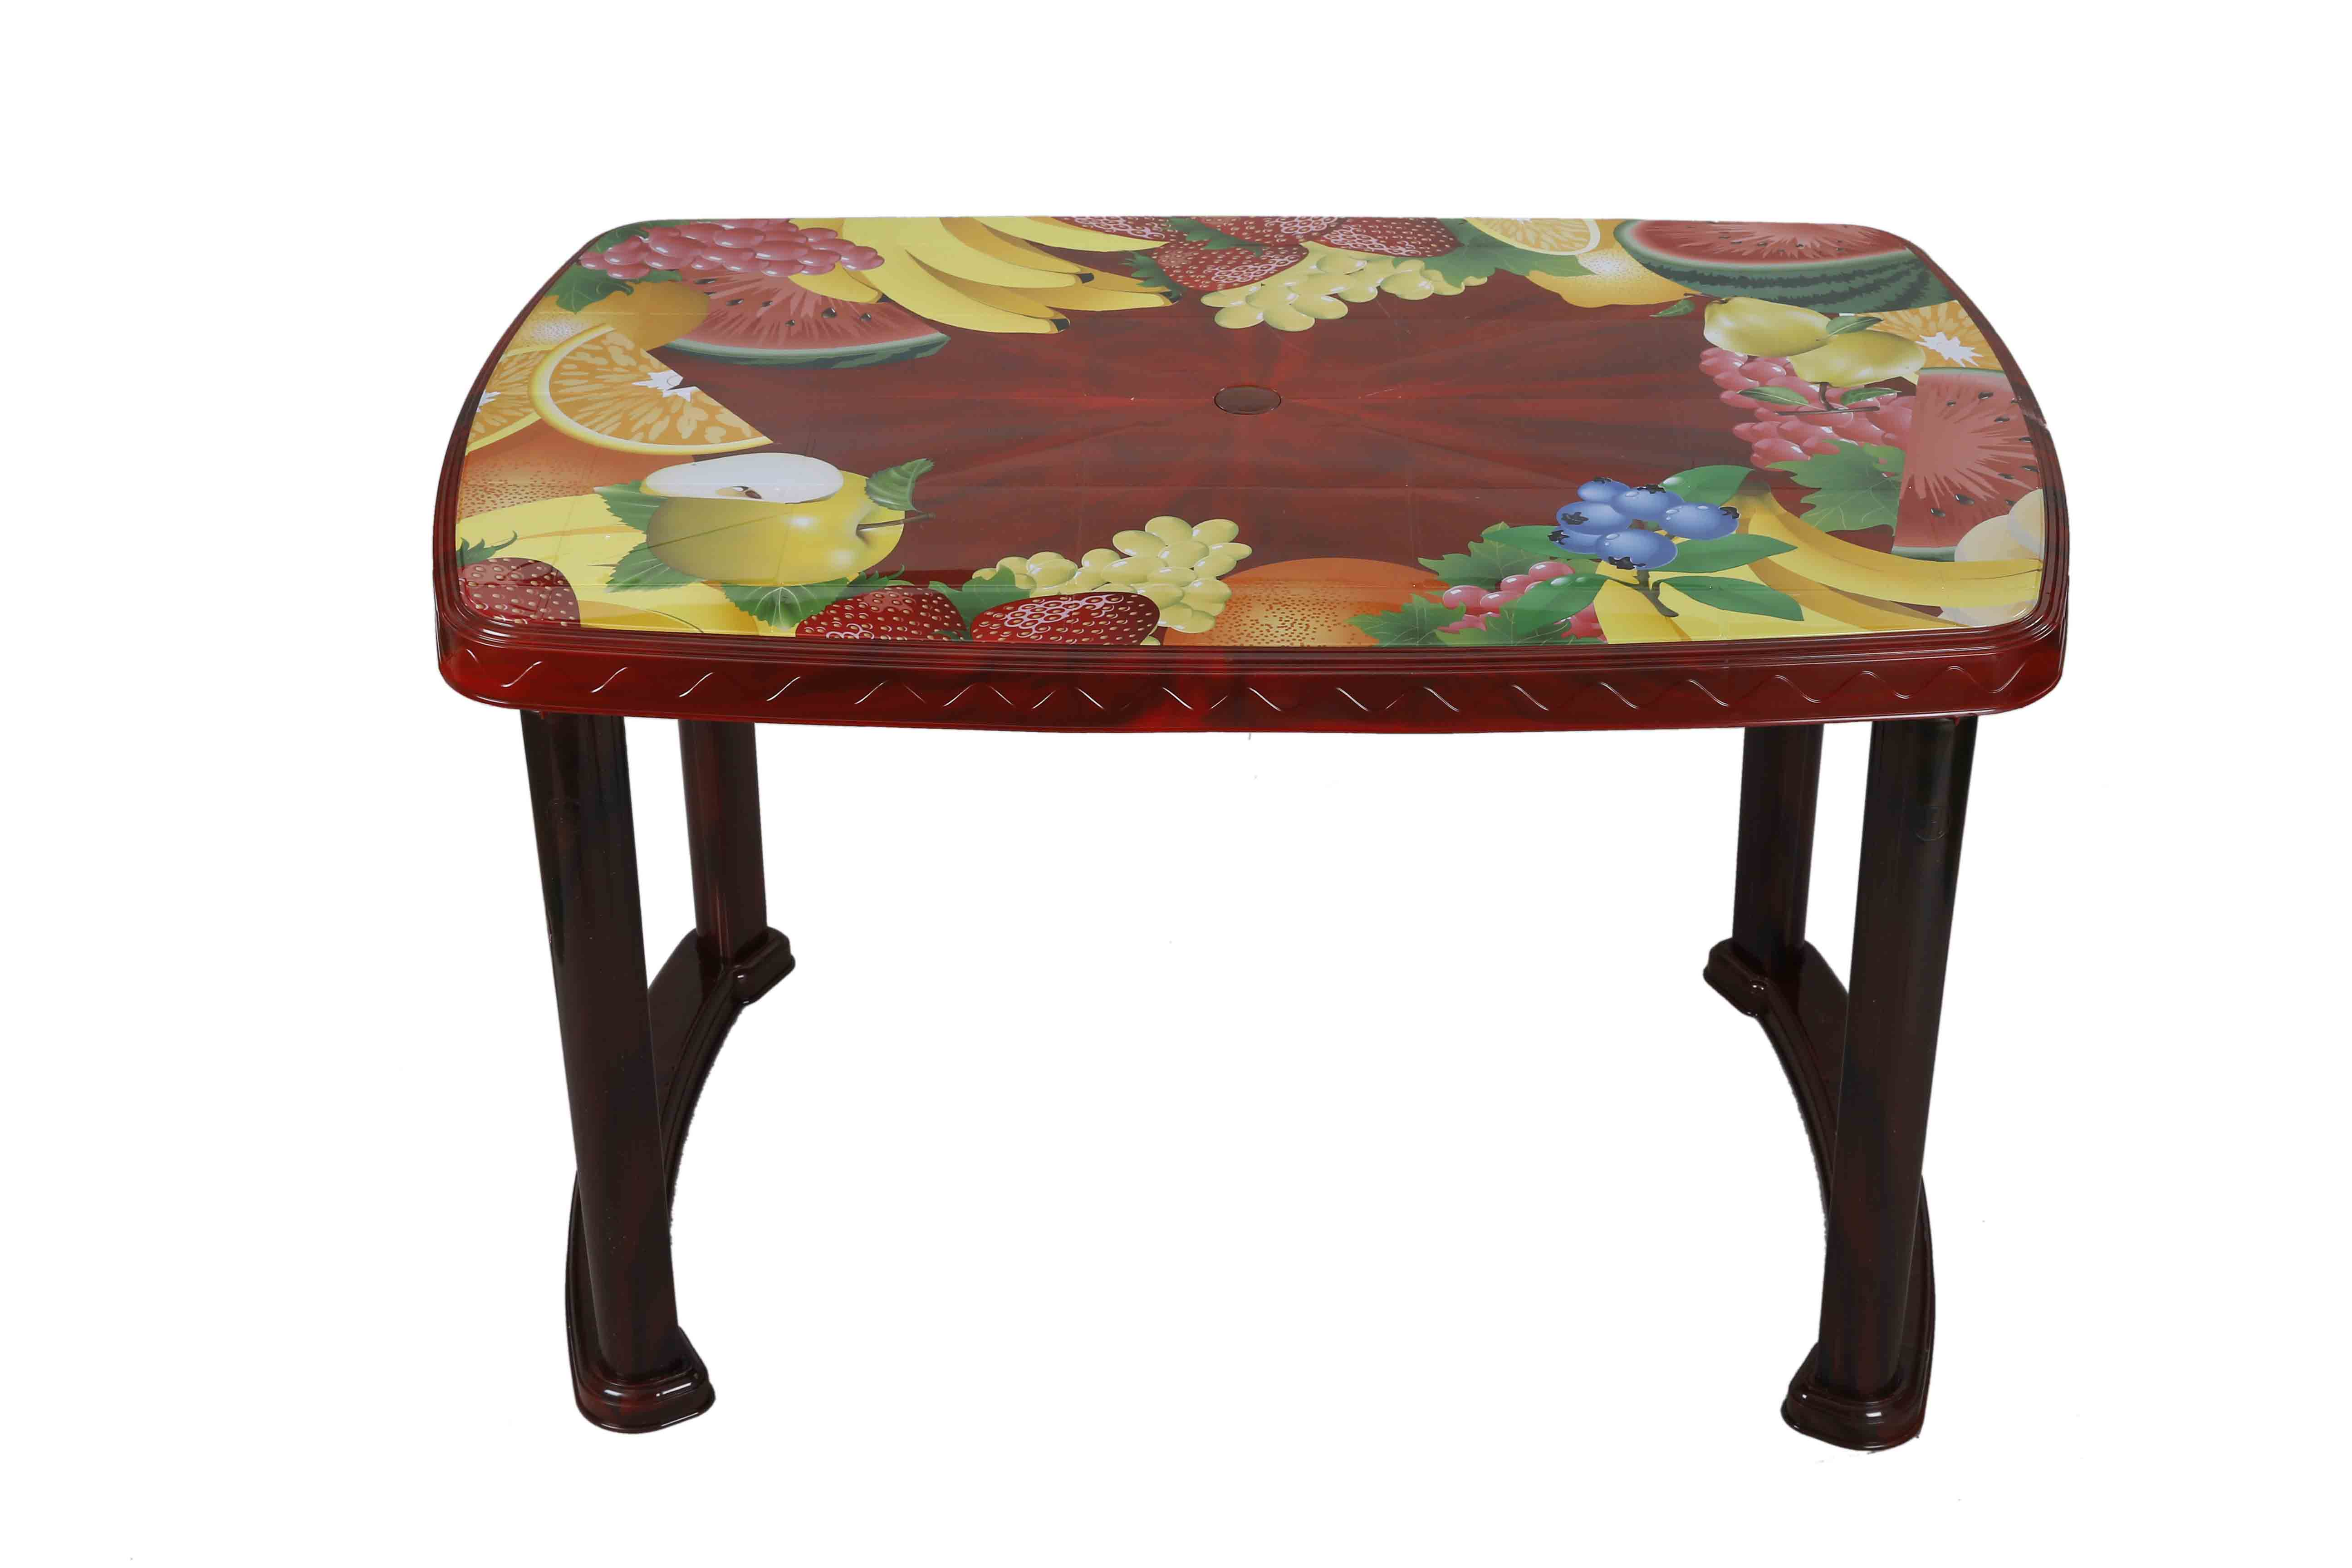 Dining Table 4 Seat Rtg P/L Print Bunny Flower -SW